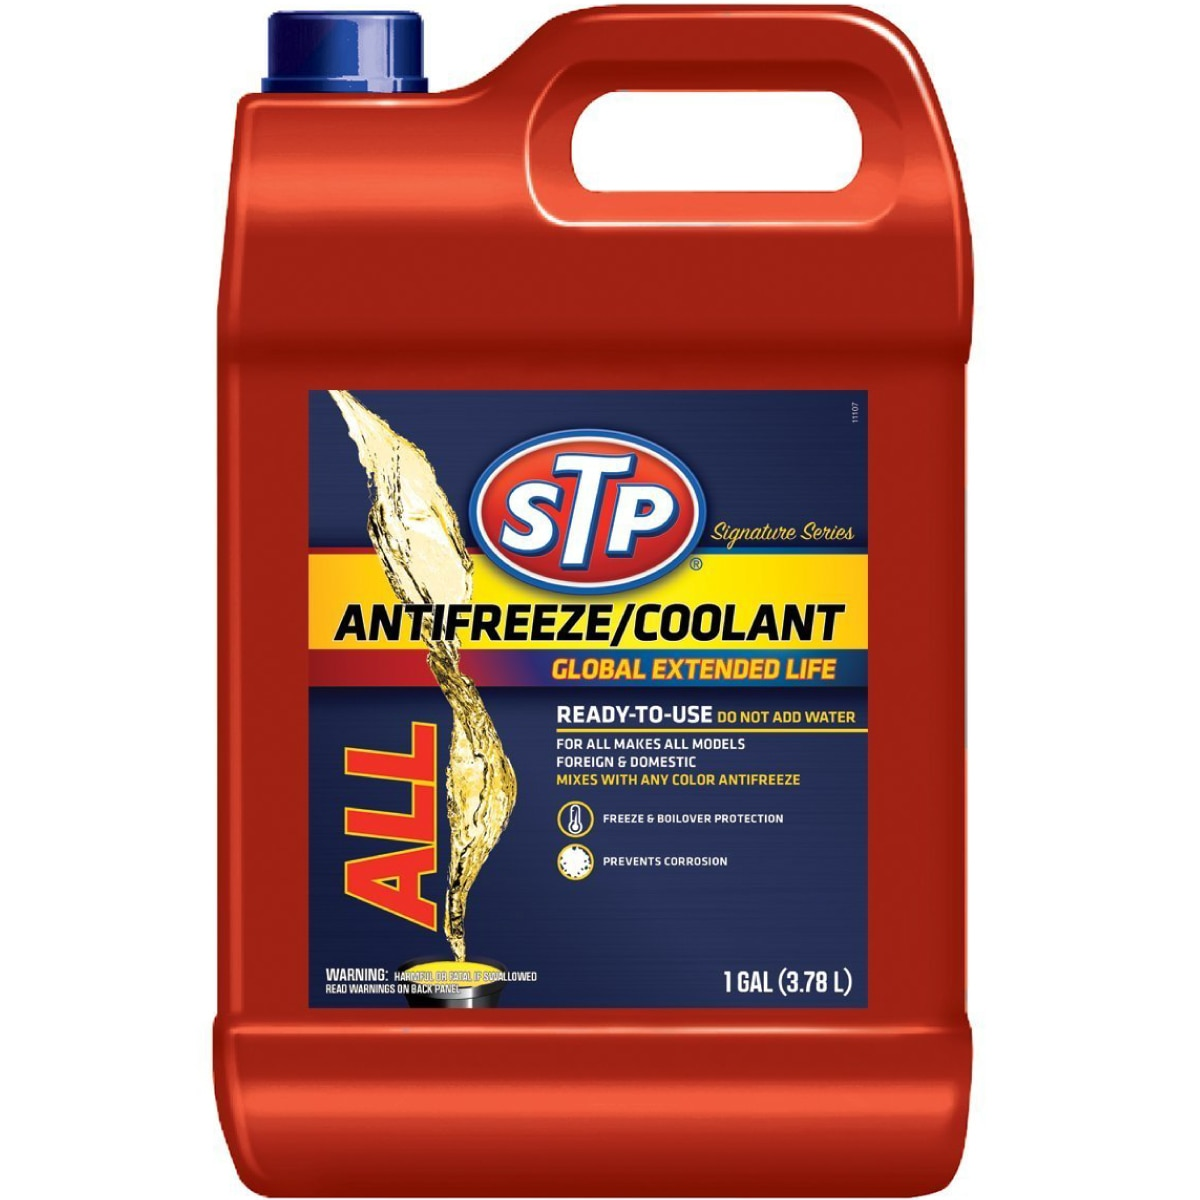 Antifreeze/Coolant All Makes & Models, Global Extended Life 1Gal Stp